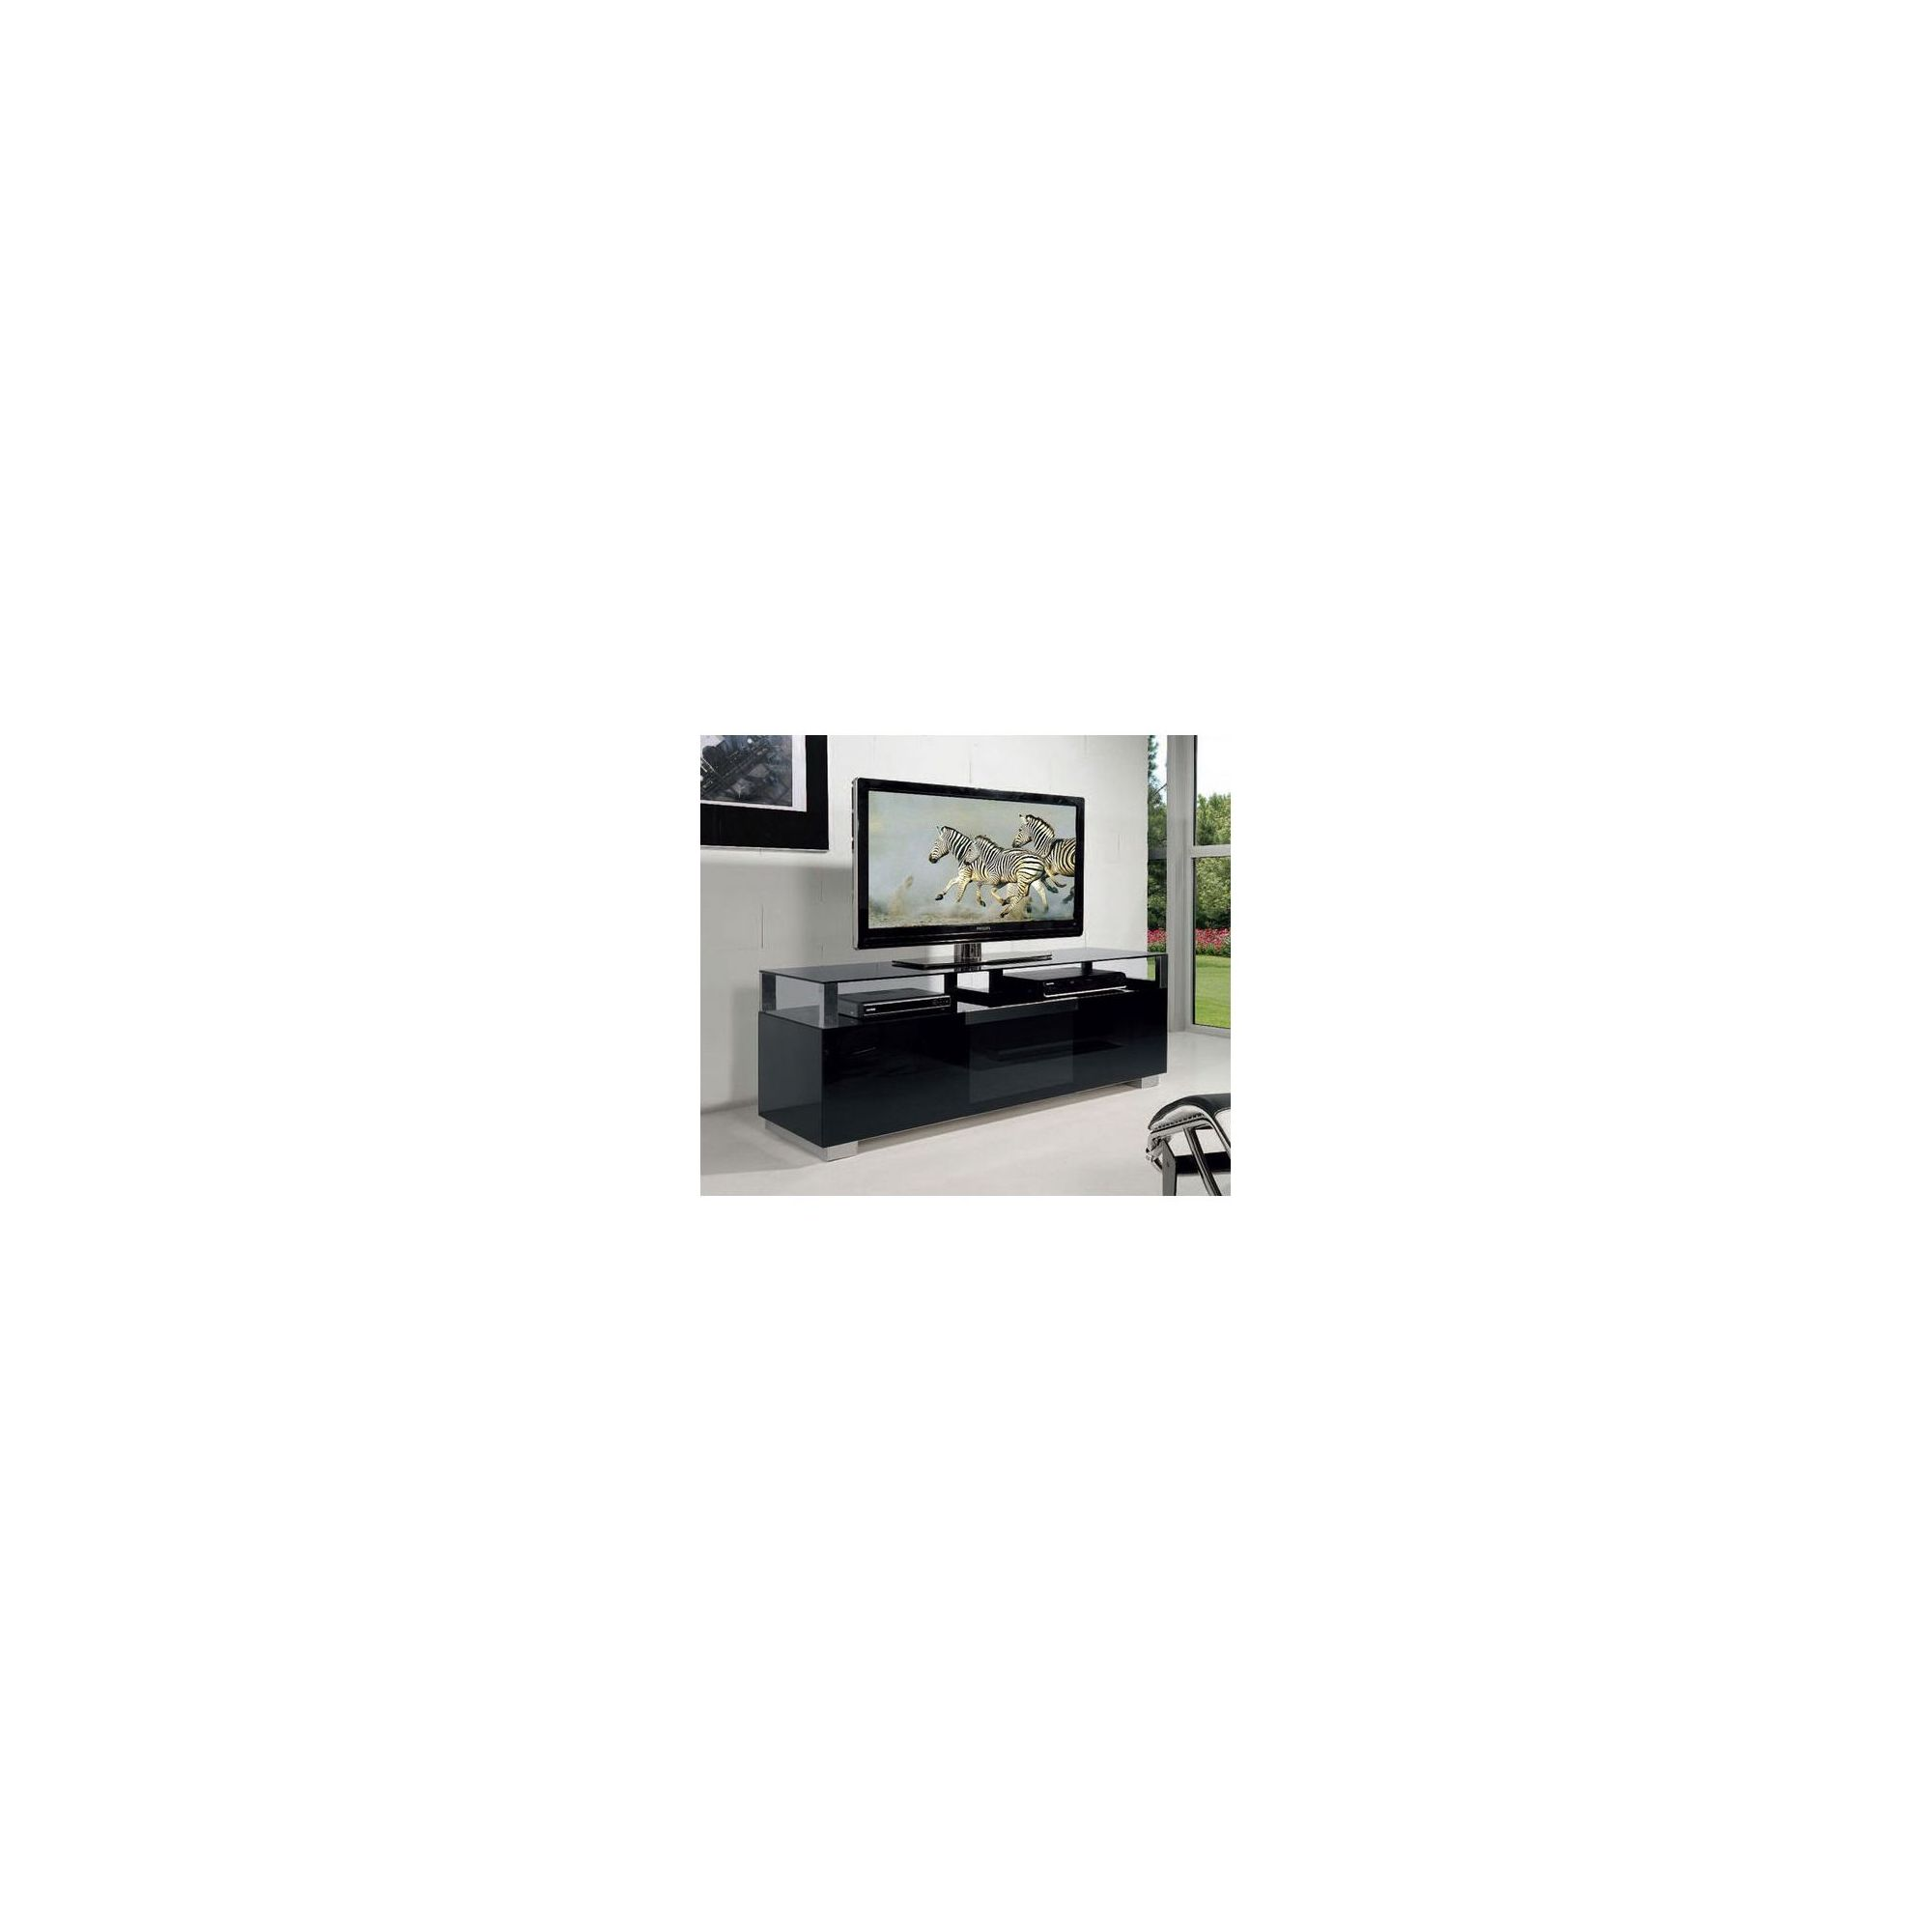 Triskom Wooden TV Stand for LCD / Plasmas with Three Shelves - Black Glass at Tesco Direct